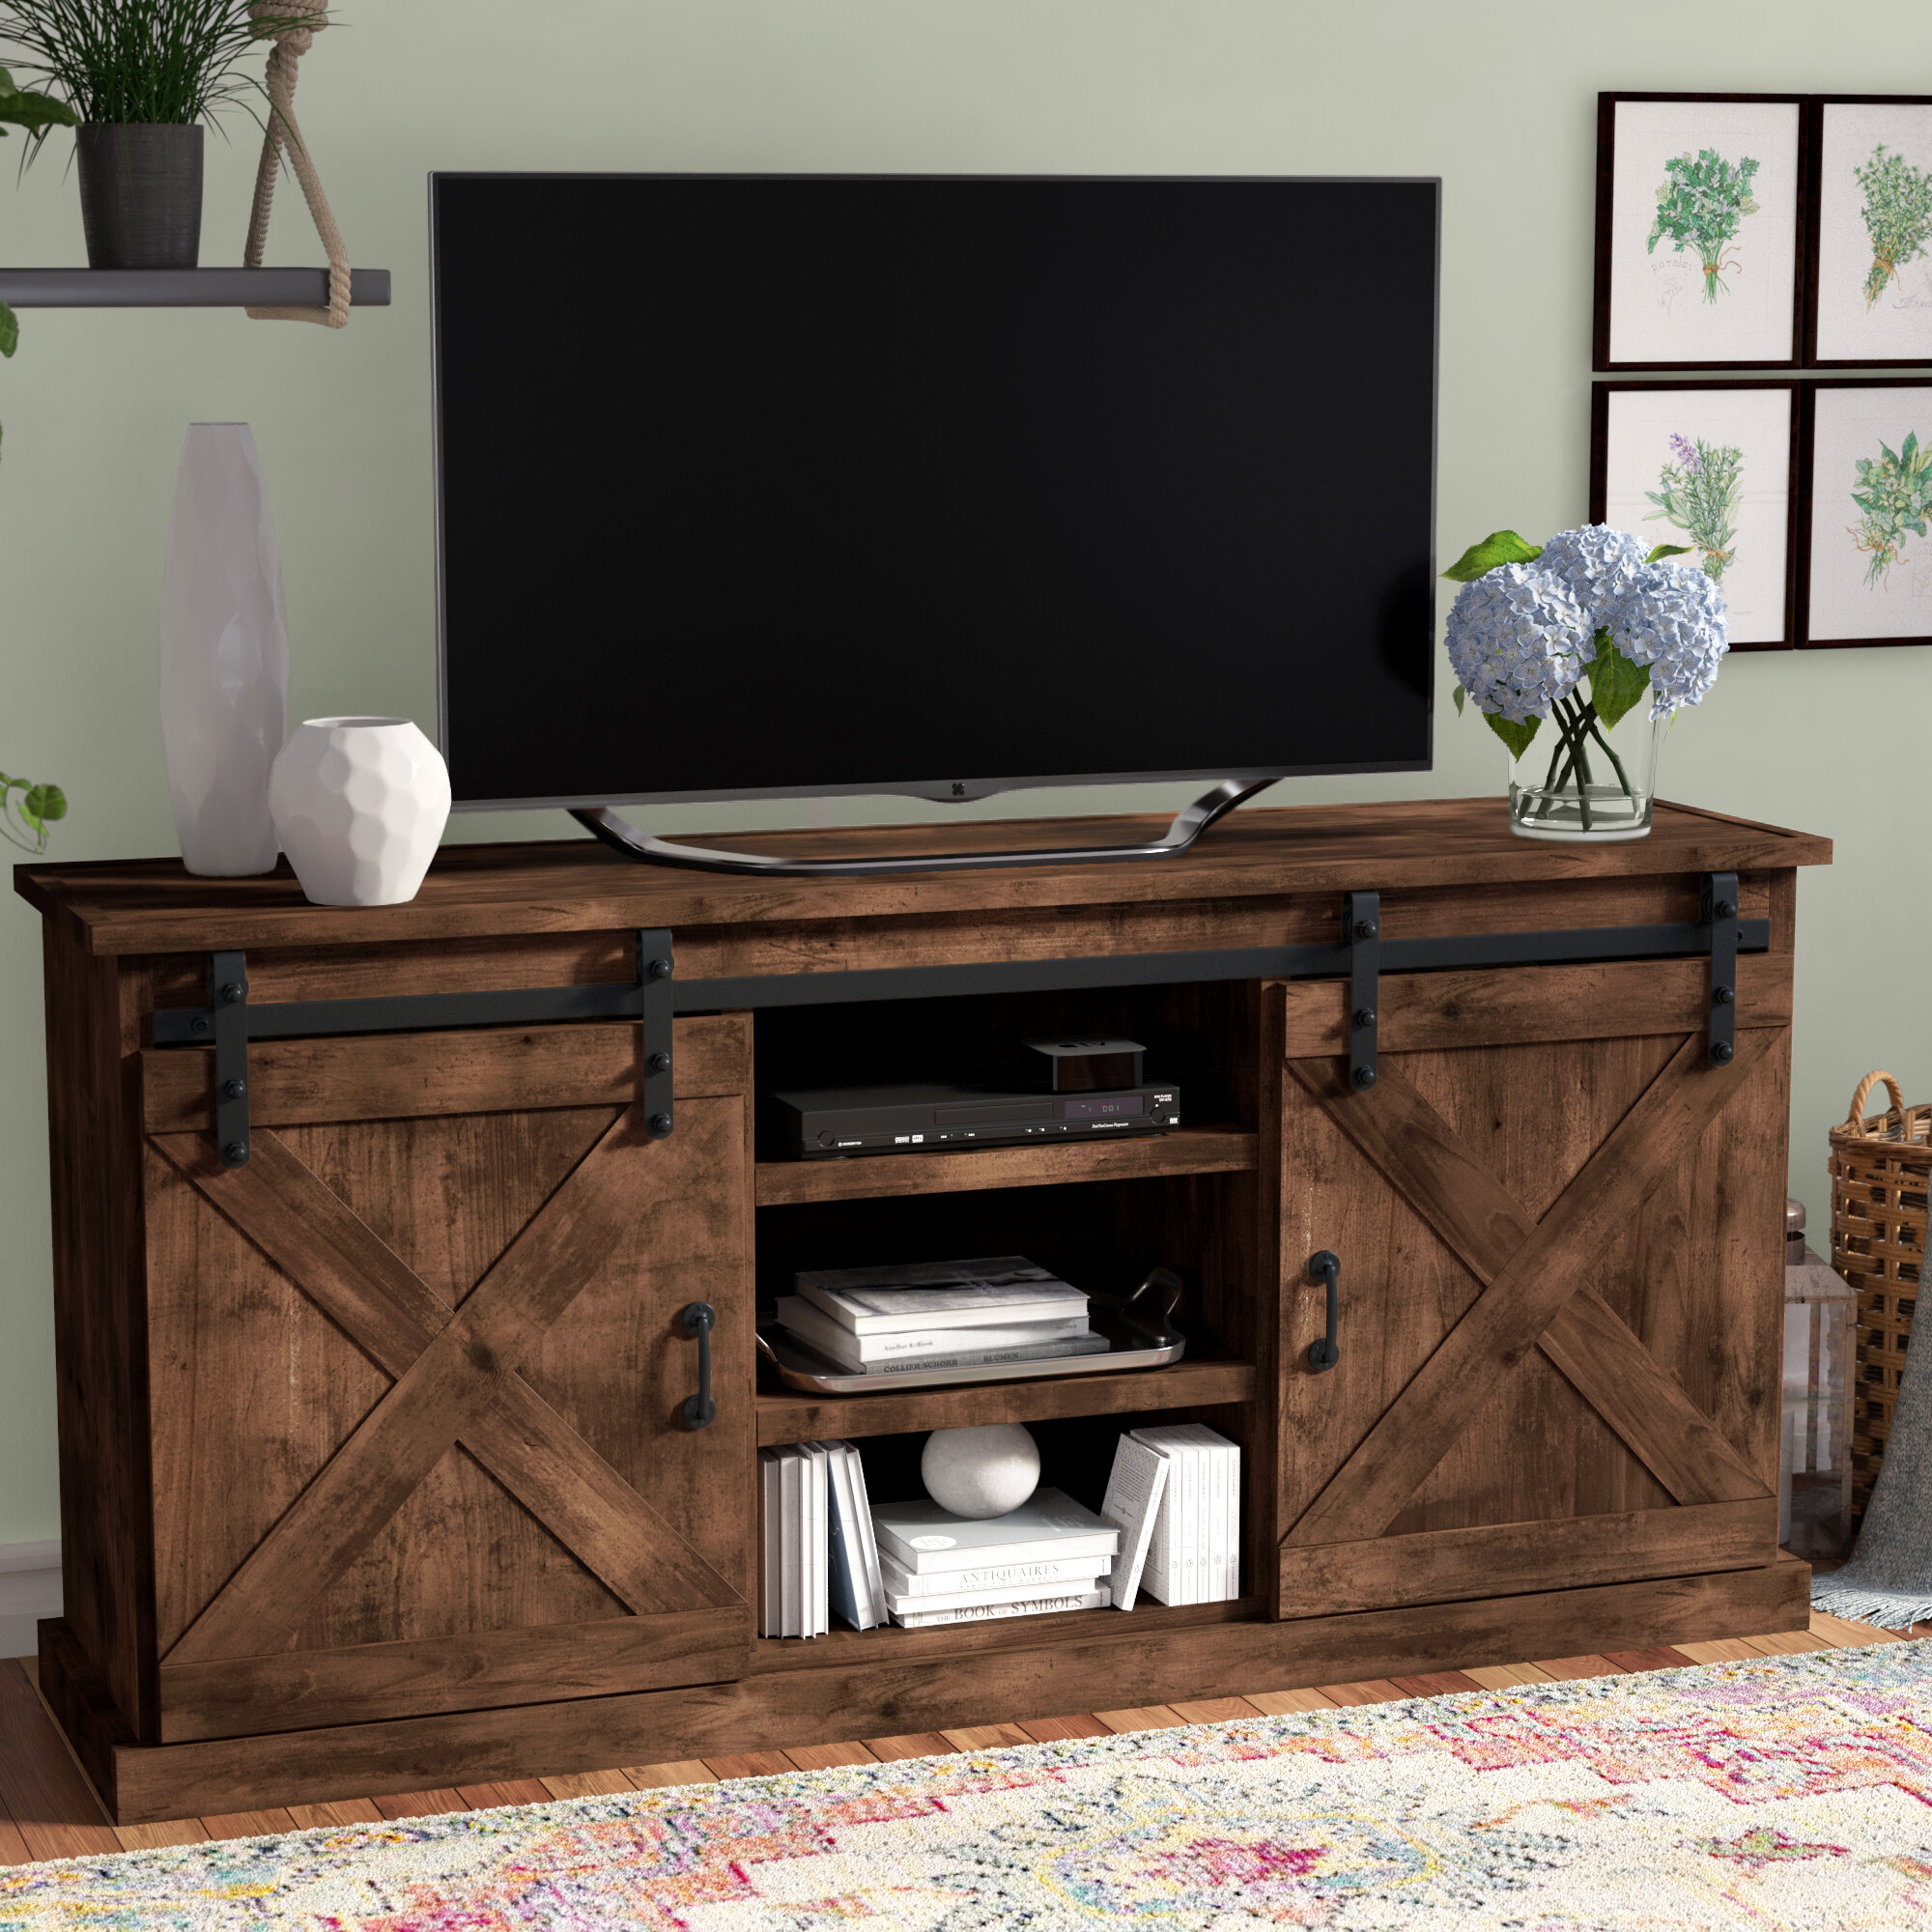 Laurel Foundry Modern Farmhouse Clair Tv Stand For Tvs Up To 70 Reviews Wayfair